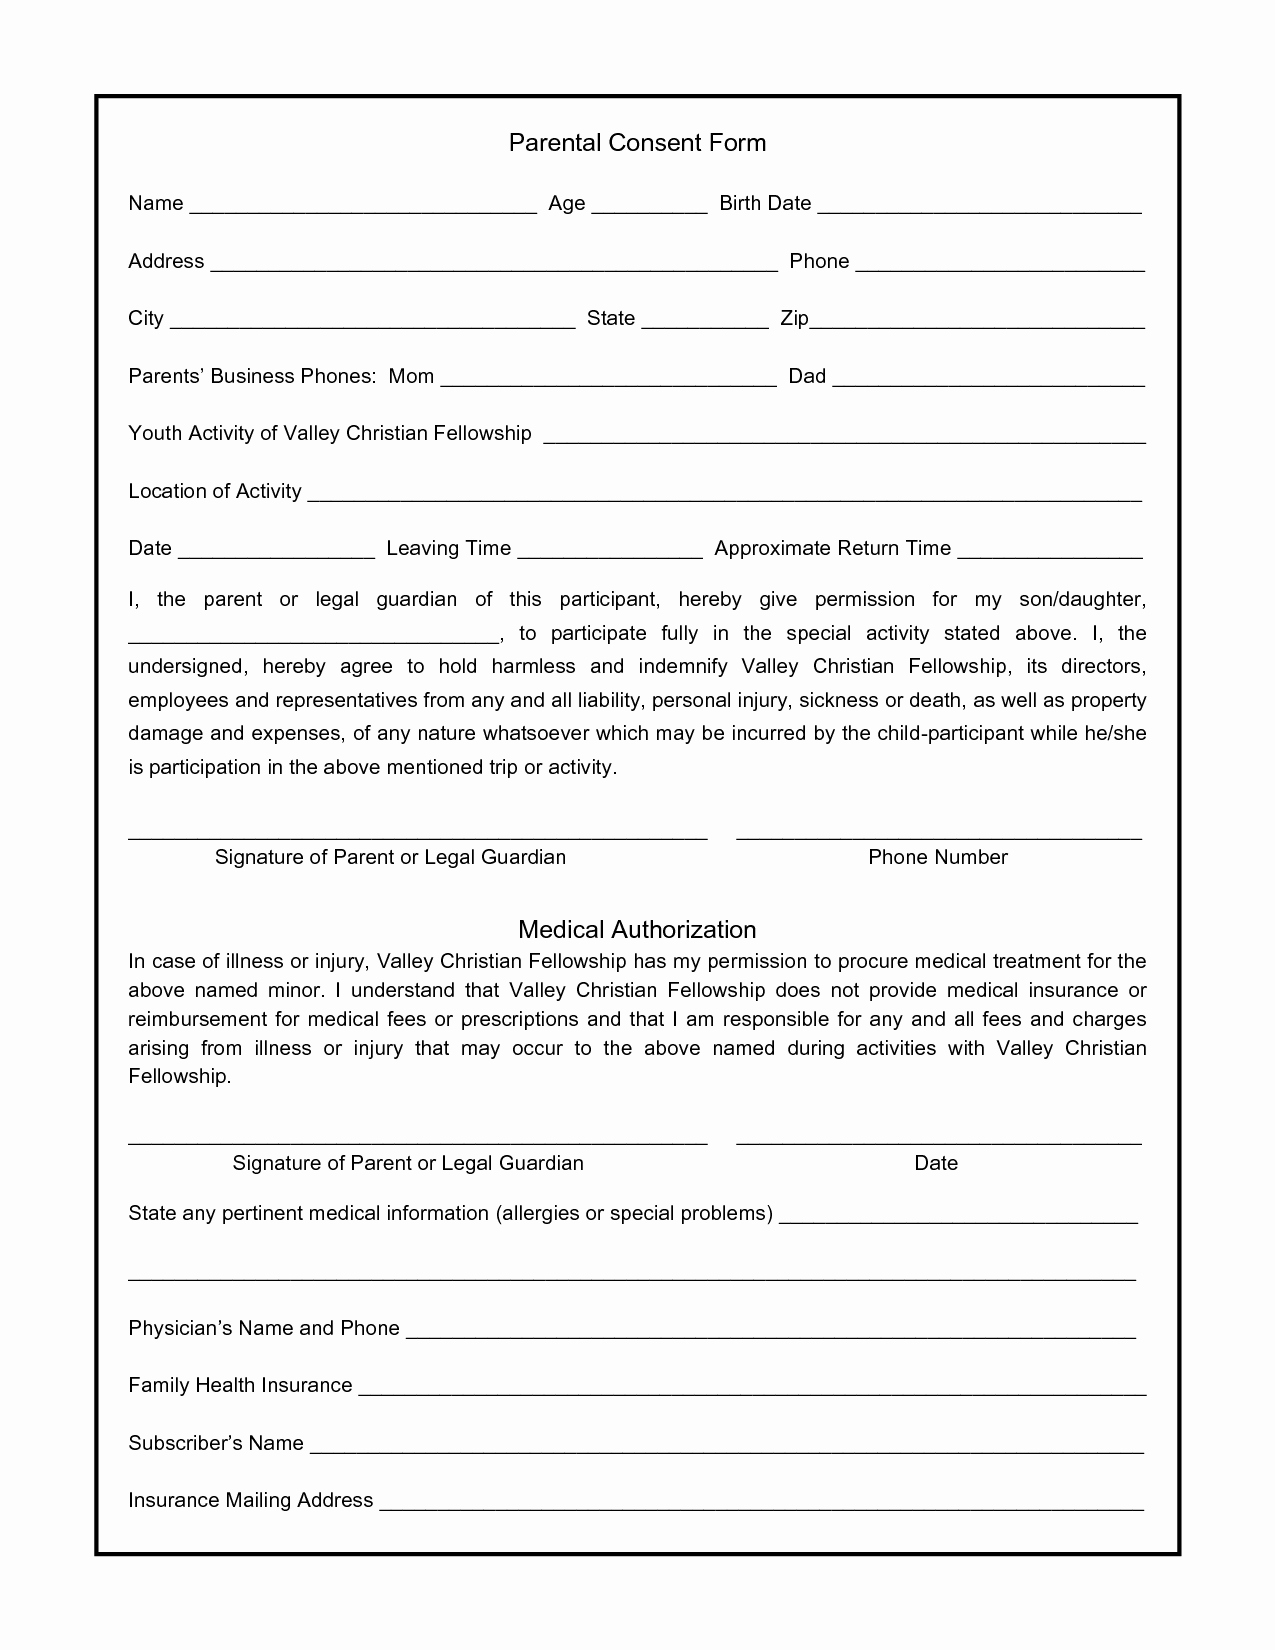 Parents Consent form Template Unique Parental Consent form for S Swifter Parental